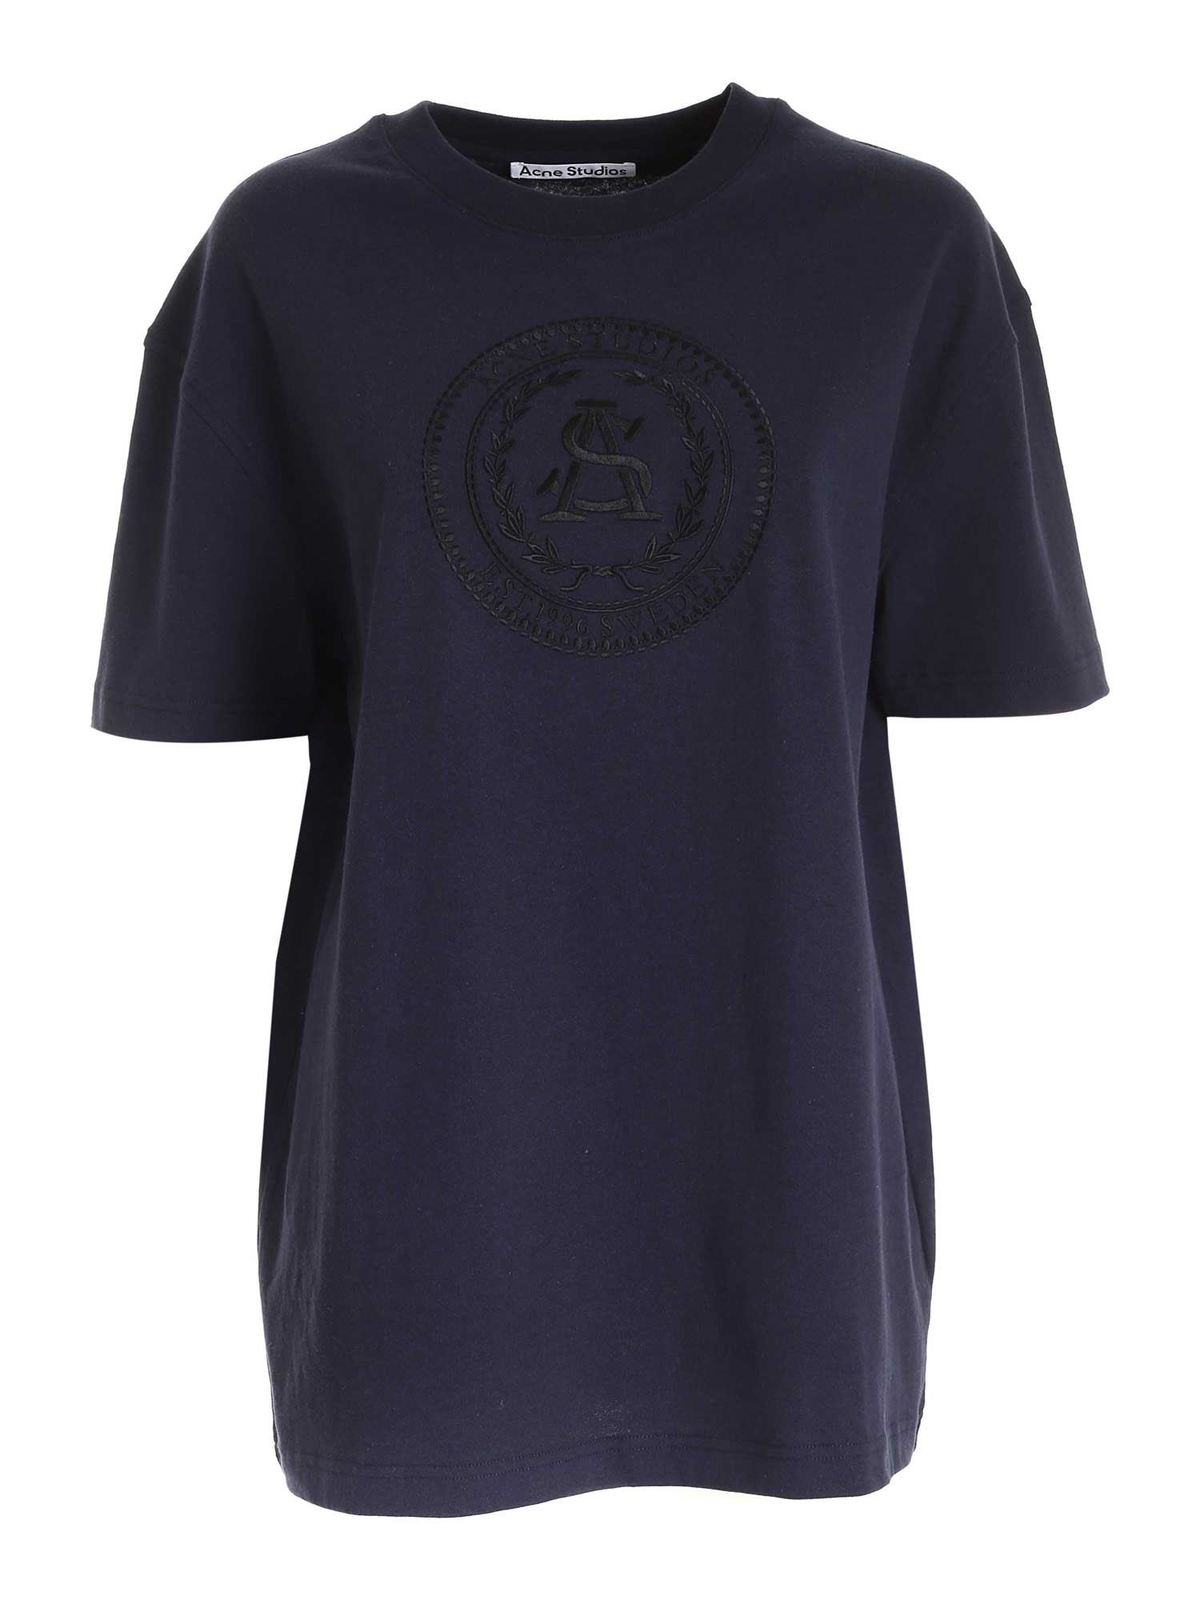 Acne Studios EMBROIDERY T-SHIRT IN BLUE